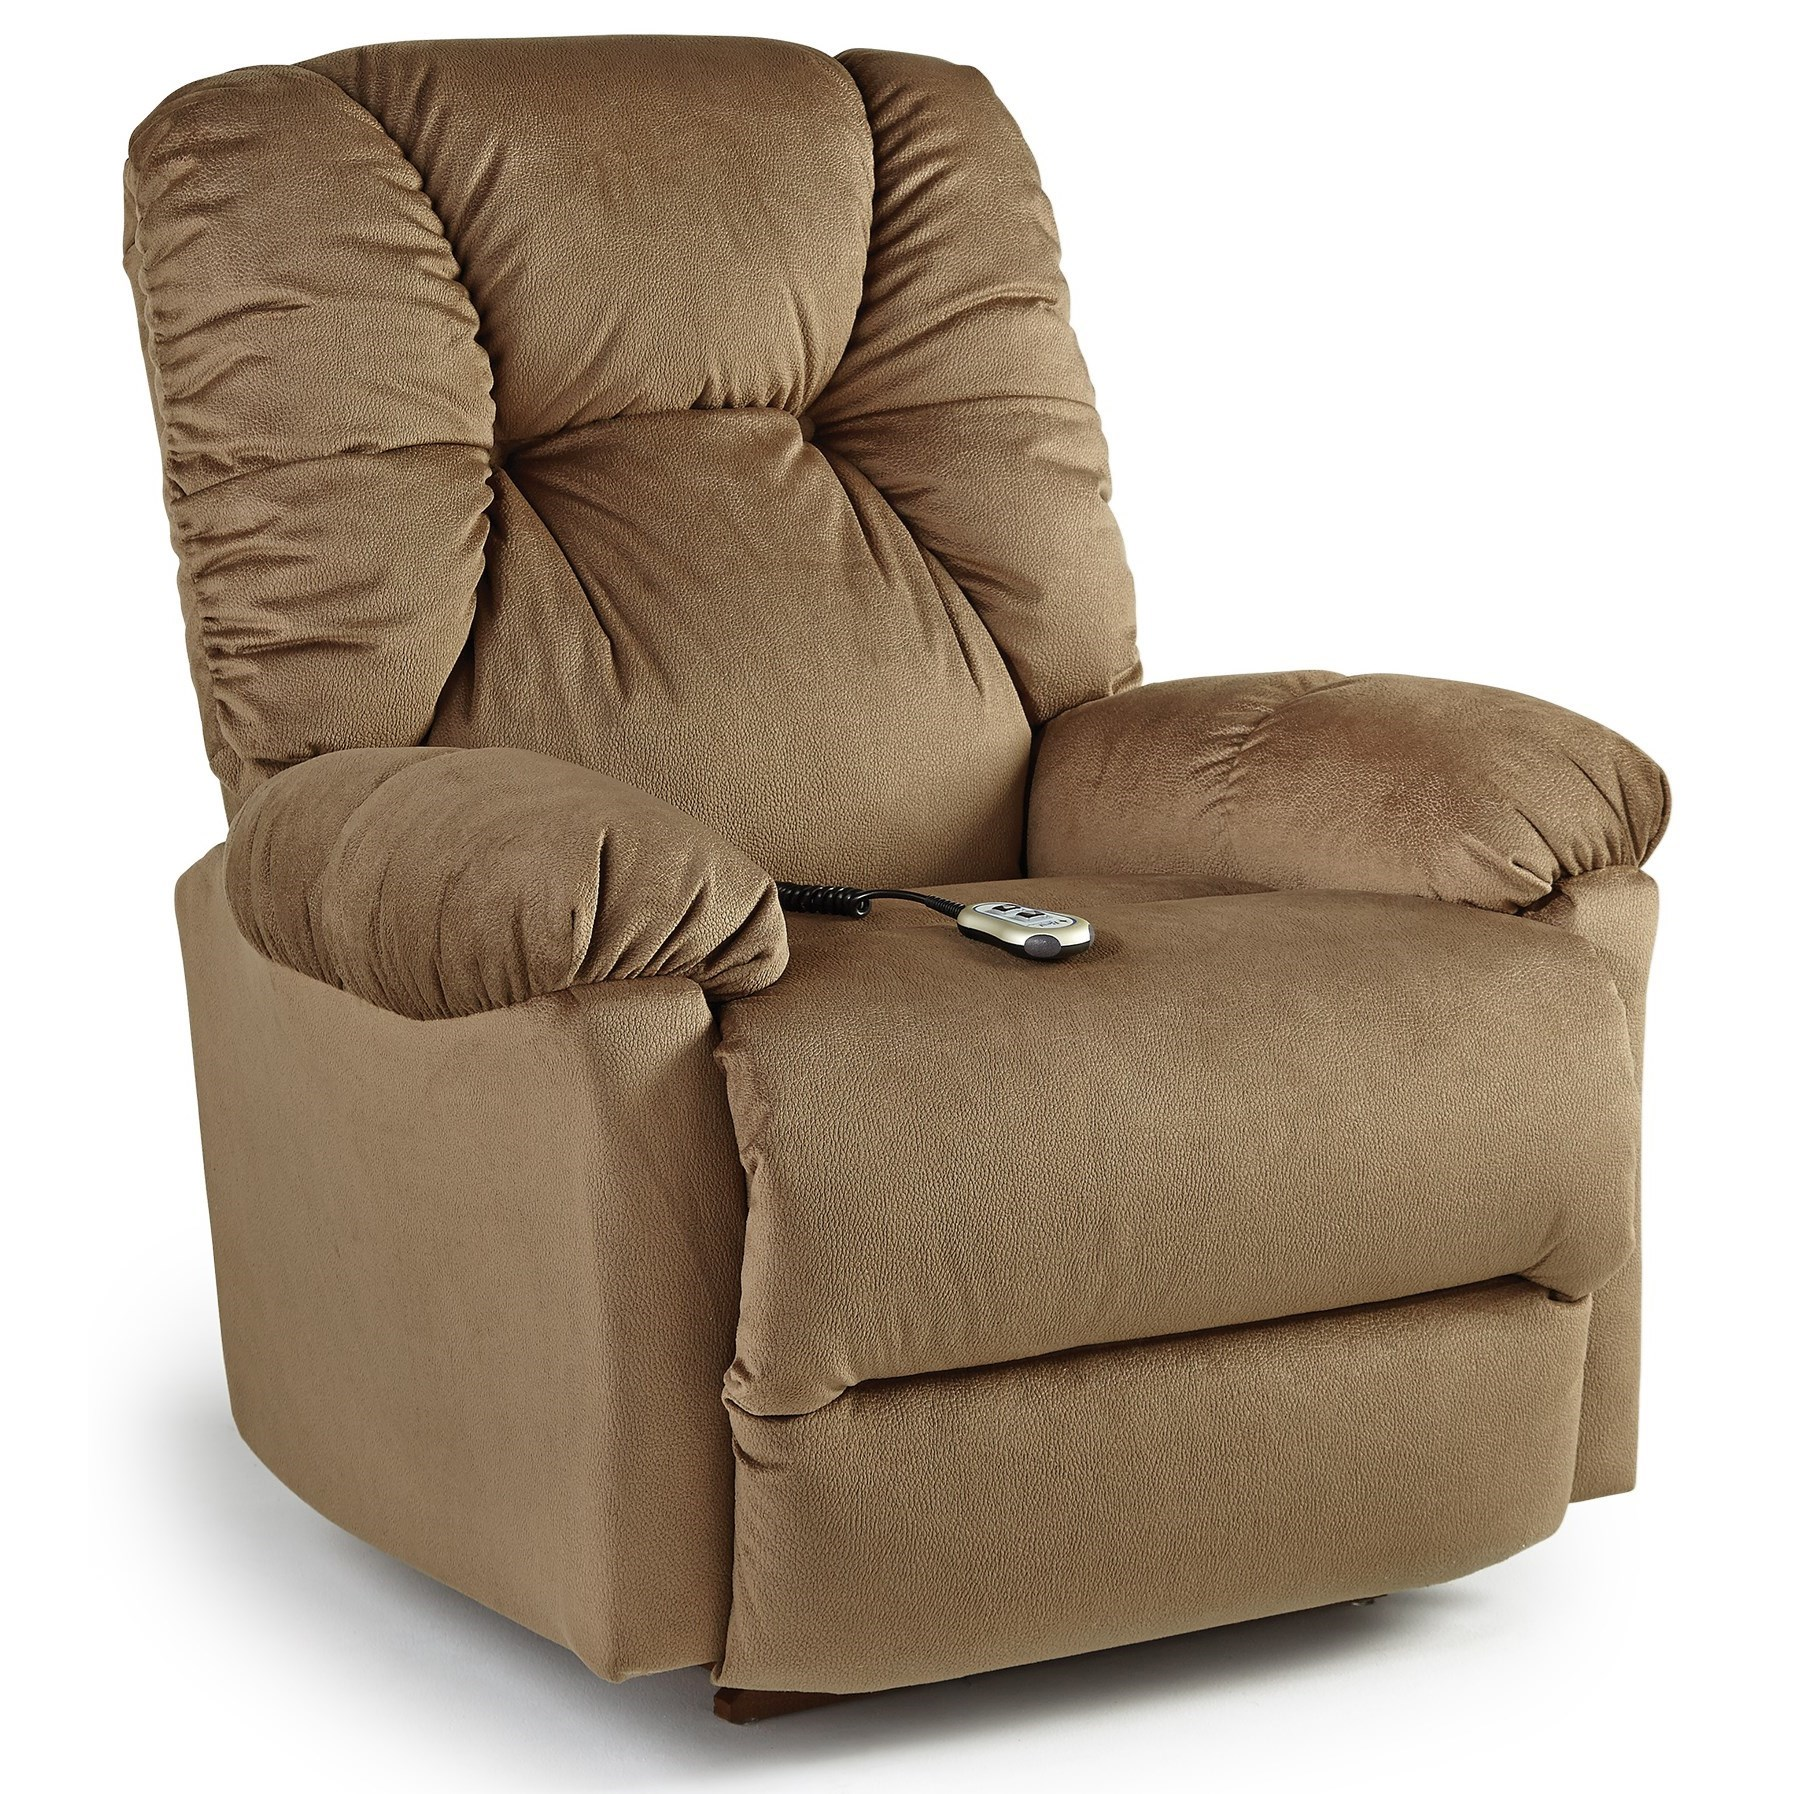 photos sized recliner com beautiful chair recliners chairs inc depot detail best bed the petite